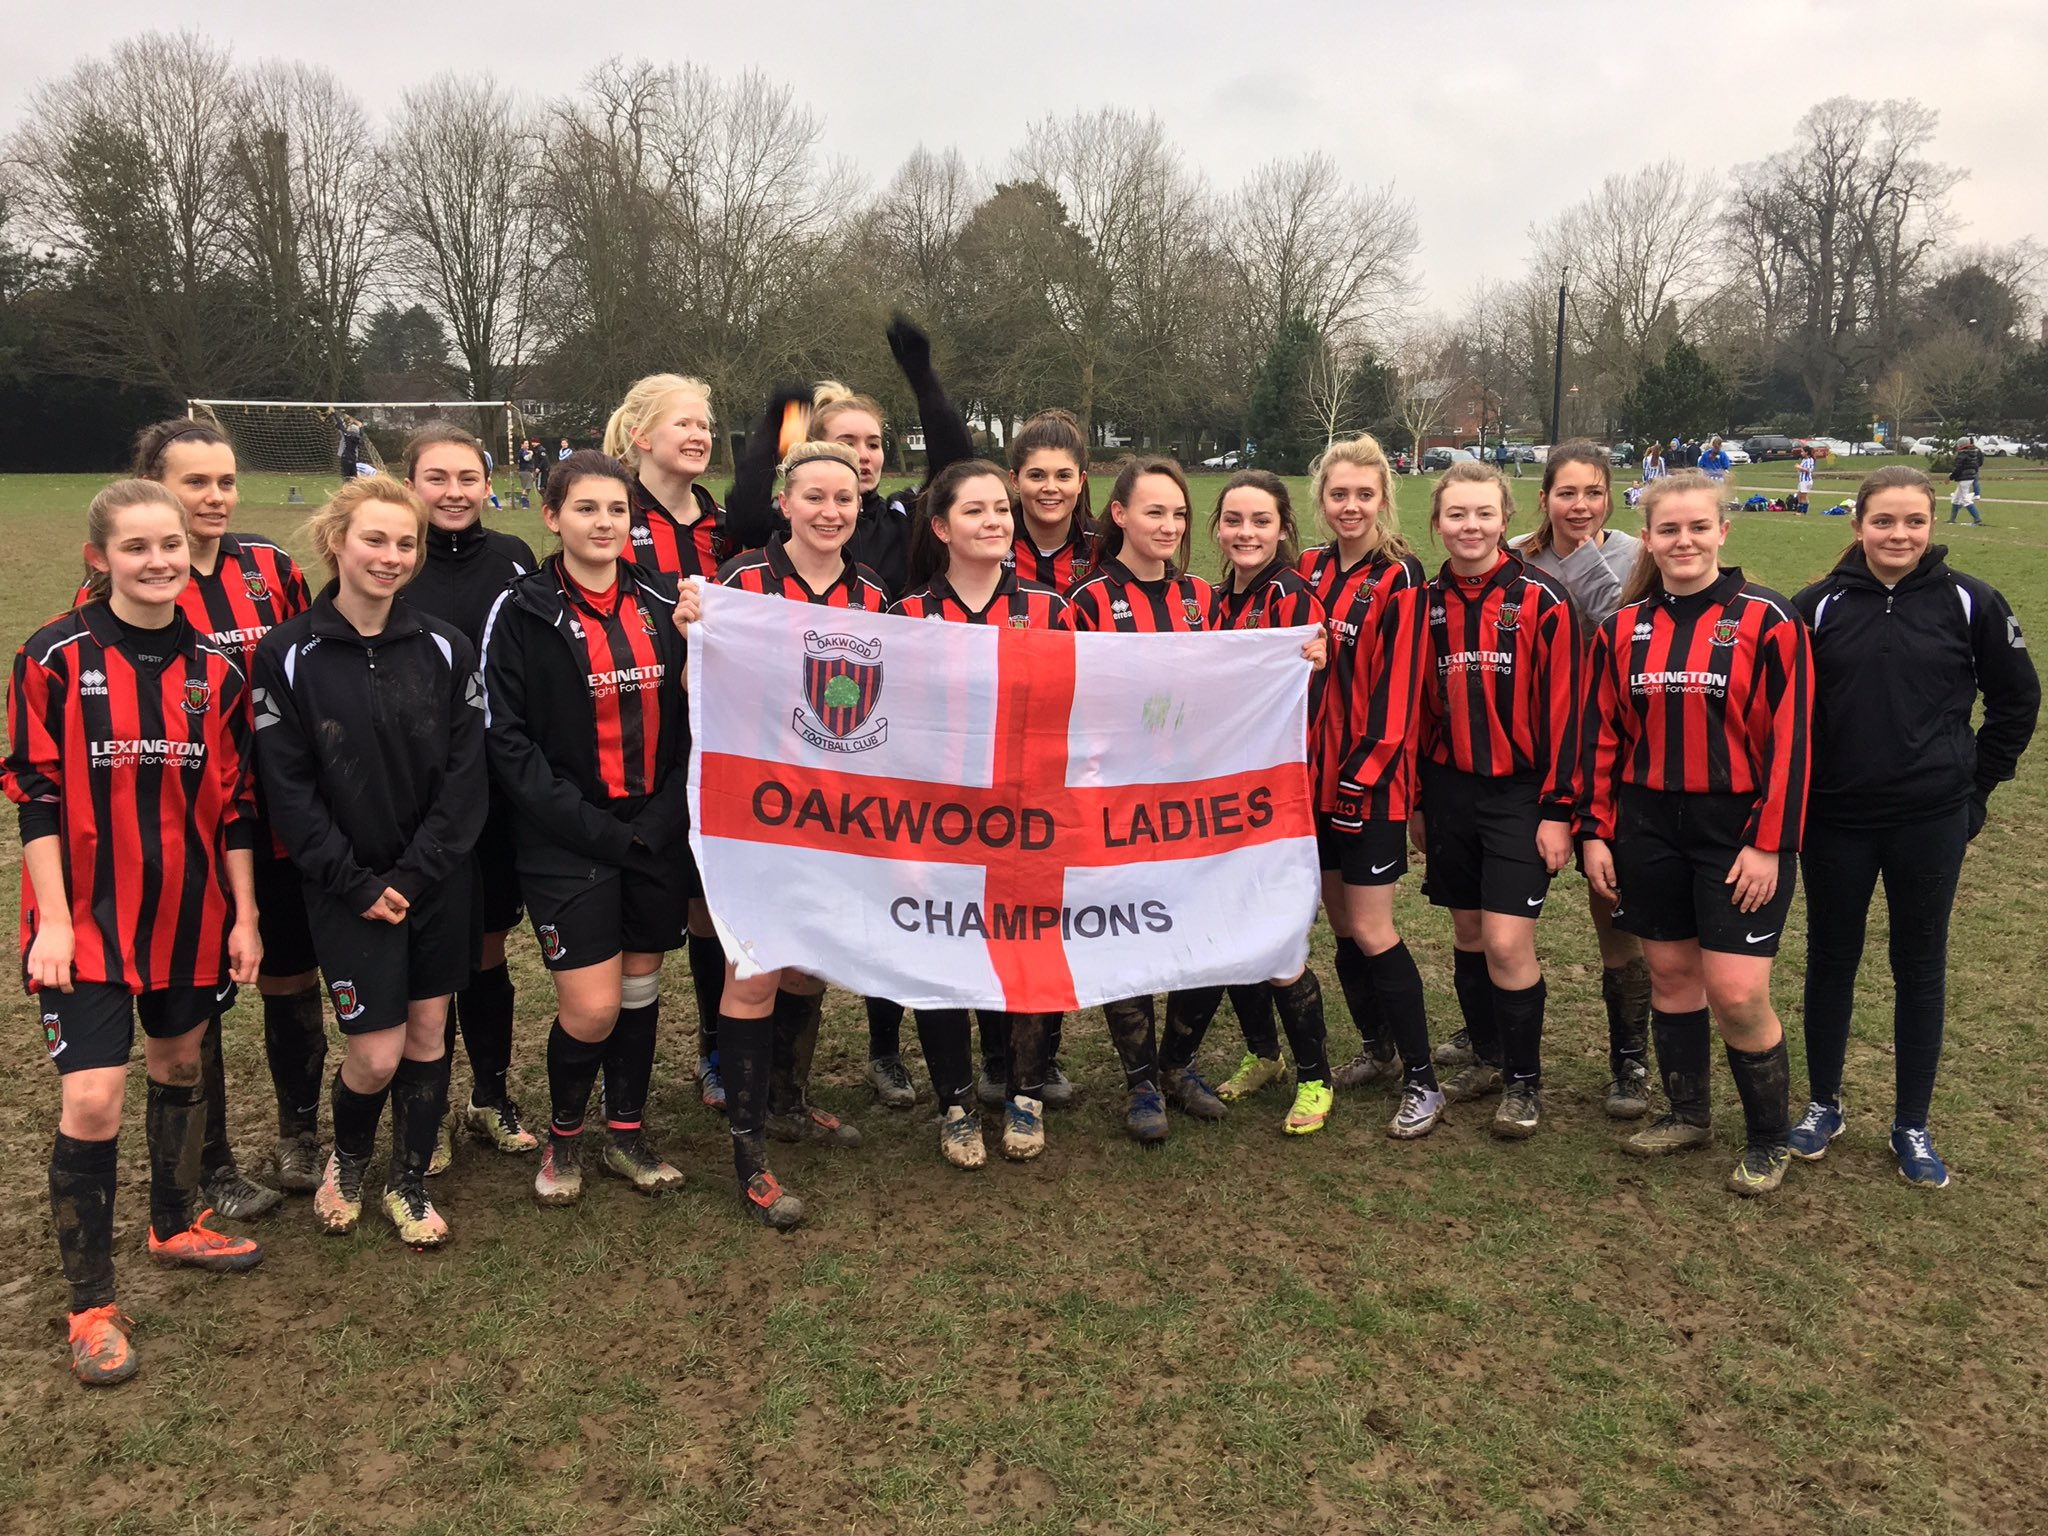 Oakwood celebrate clinching the Sussex County League title after beating Horsham Sparrows 5-0, Feb 12 2017 (Photo: Oakwood Ladies FC)